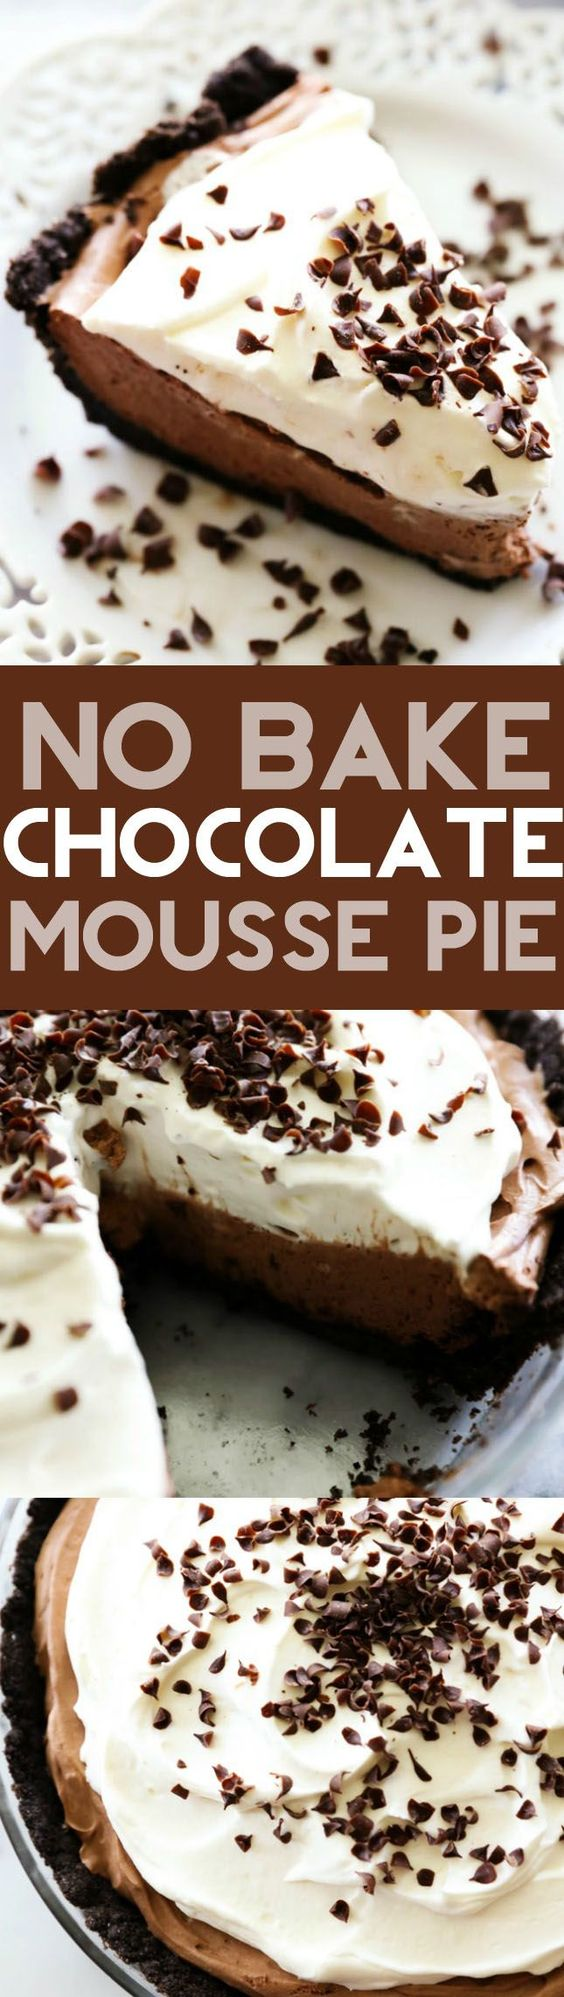 "No Bake Chocolate Mousse Pie Easy Dessert Recipe via Chef in Training ""... A delicious silky smooth chocolate mousse filling with a Oreo cookie crust and topped with sweetened whipped cream. This is truly a magnificent pie!"" Favorite EASY Pies Recipes - Brunch Dessert No-Bake + Bake Musts"